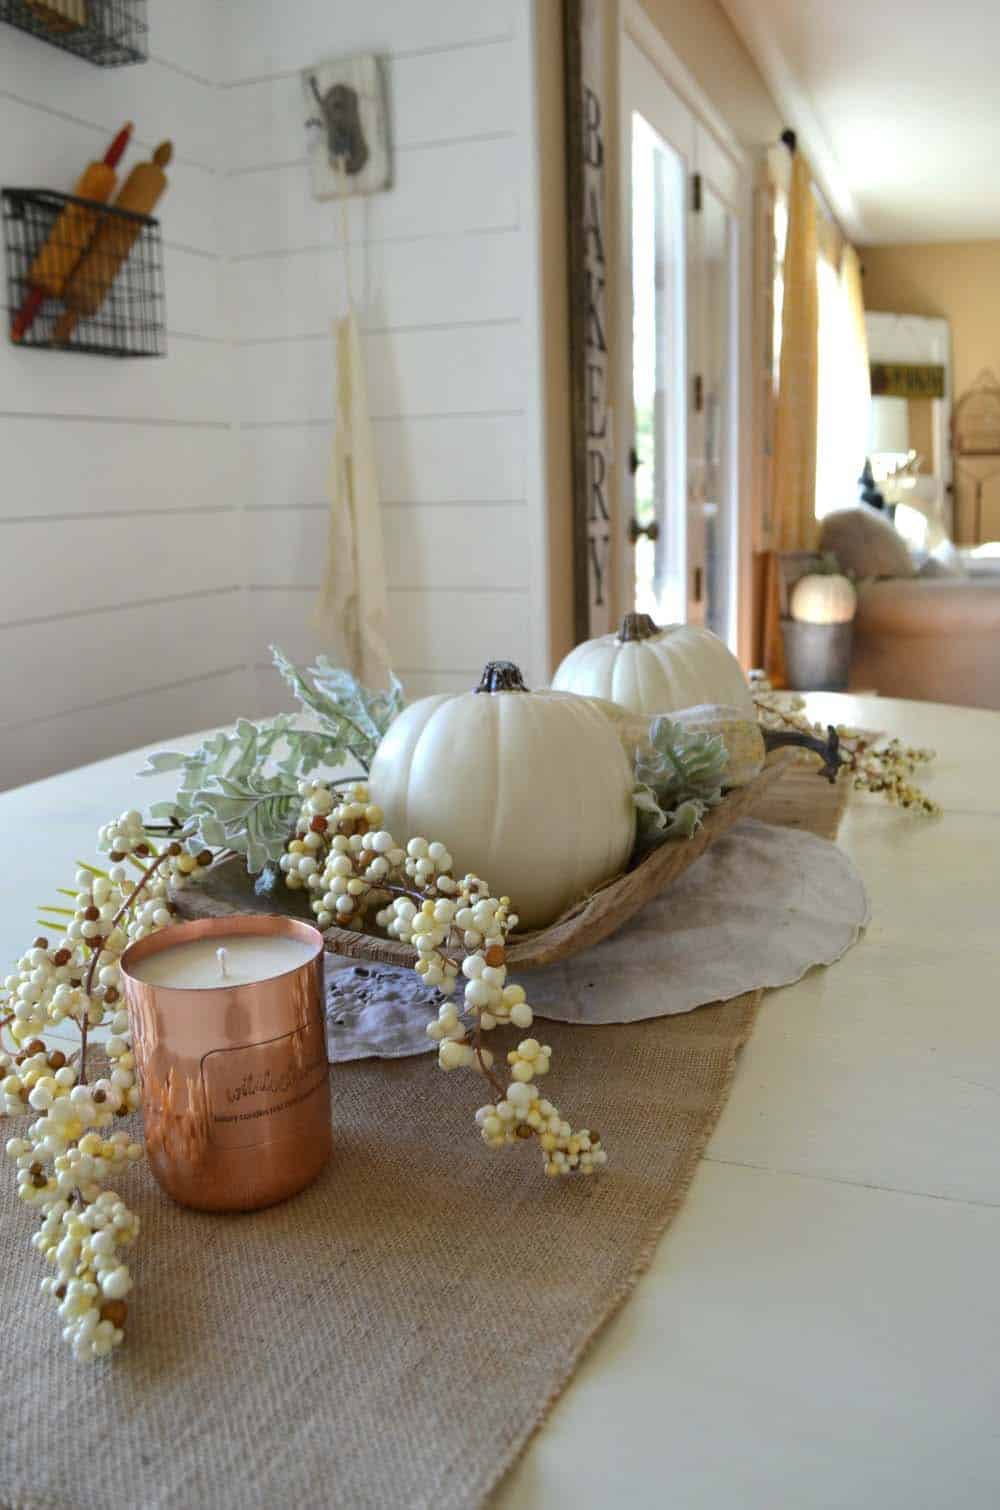 Inspiring Fall Decor Ideas-26-1 Kindesign